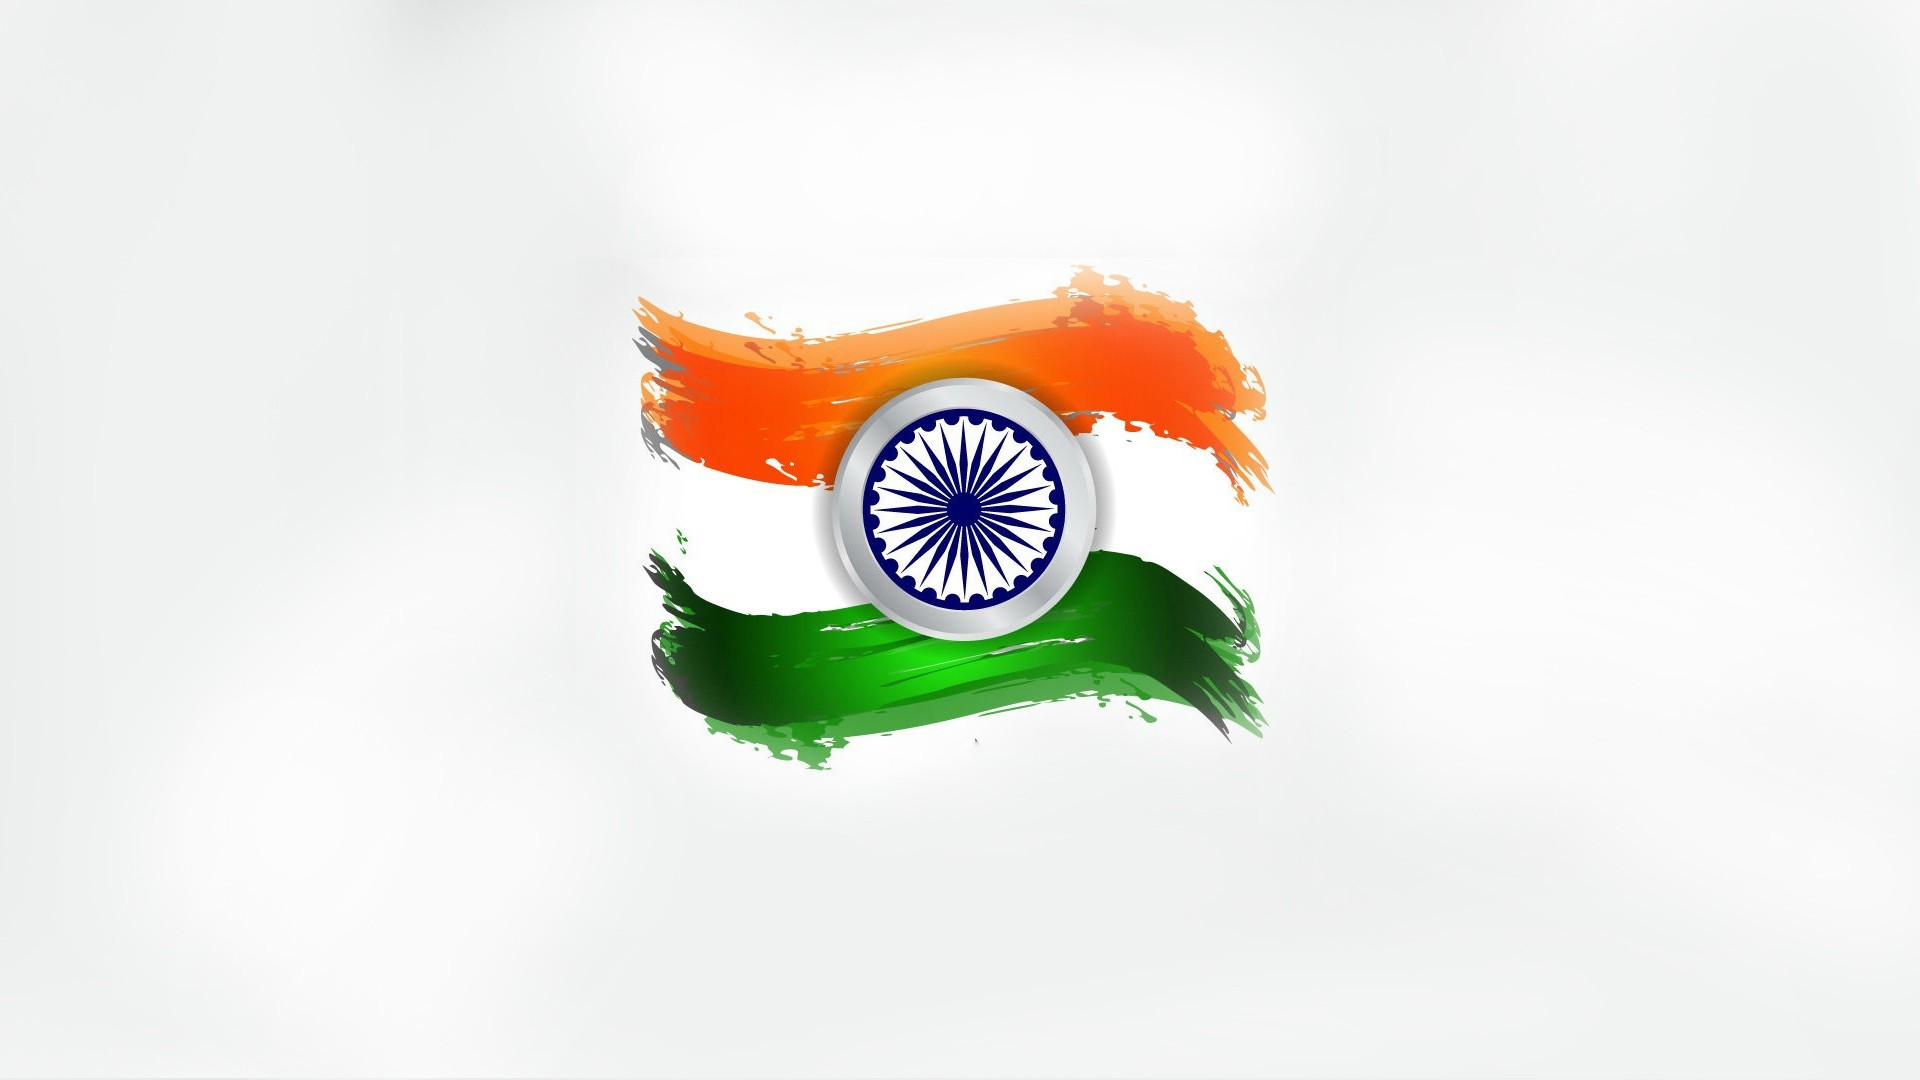 indian flag pic hd with simple tricolor design – tiranga photo | hd